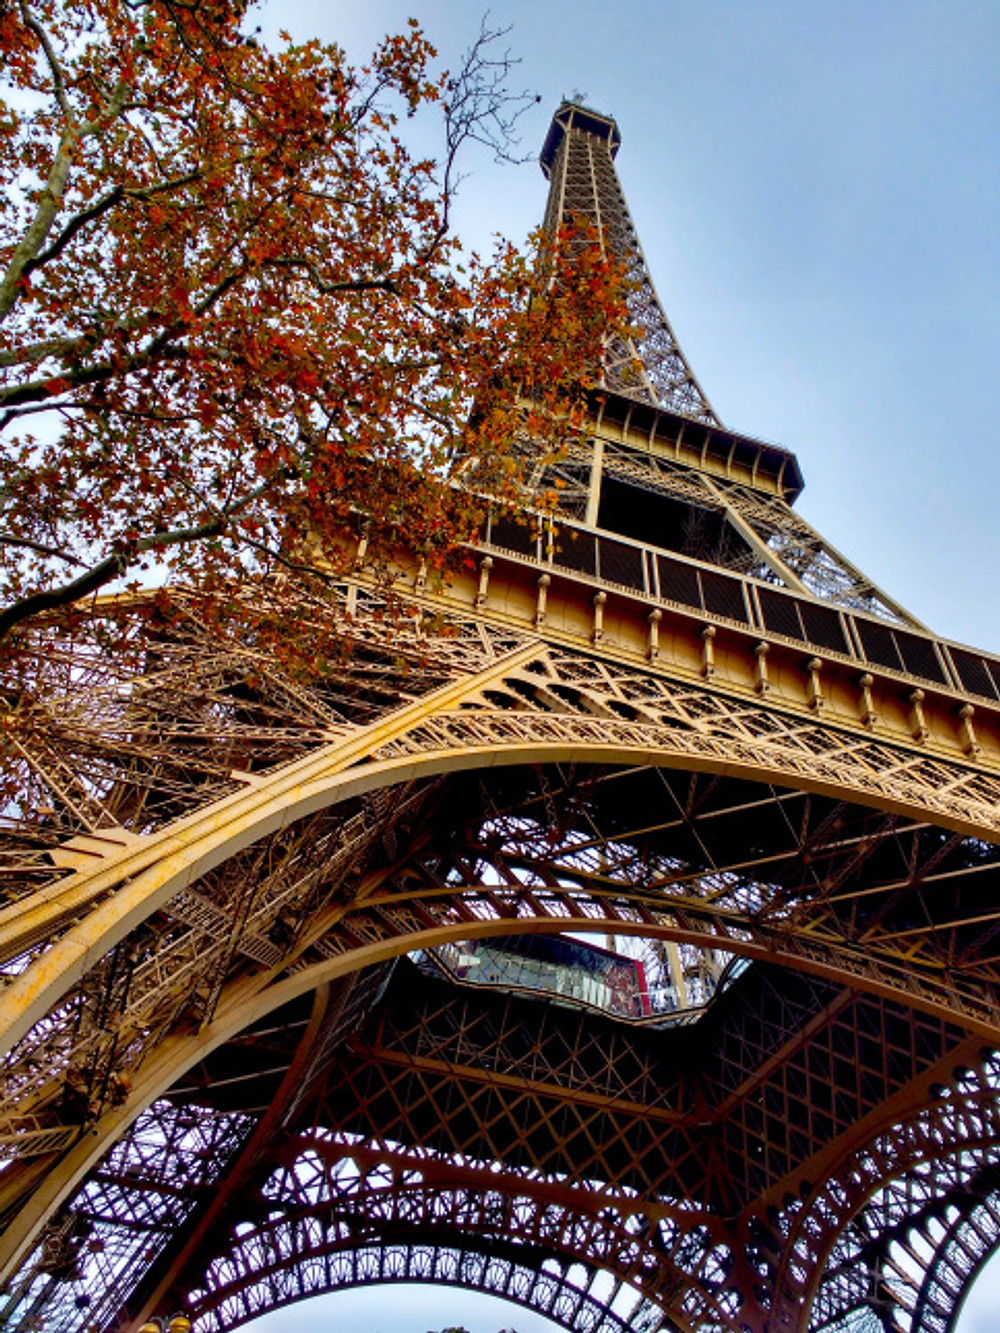 While he'd seen it from afar, on our last day I insisted he see the Eiffel Tower up close. He thanked me twice afterwards - it really is unbelievably huge and an amazing feat of engineering.